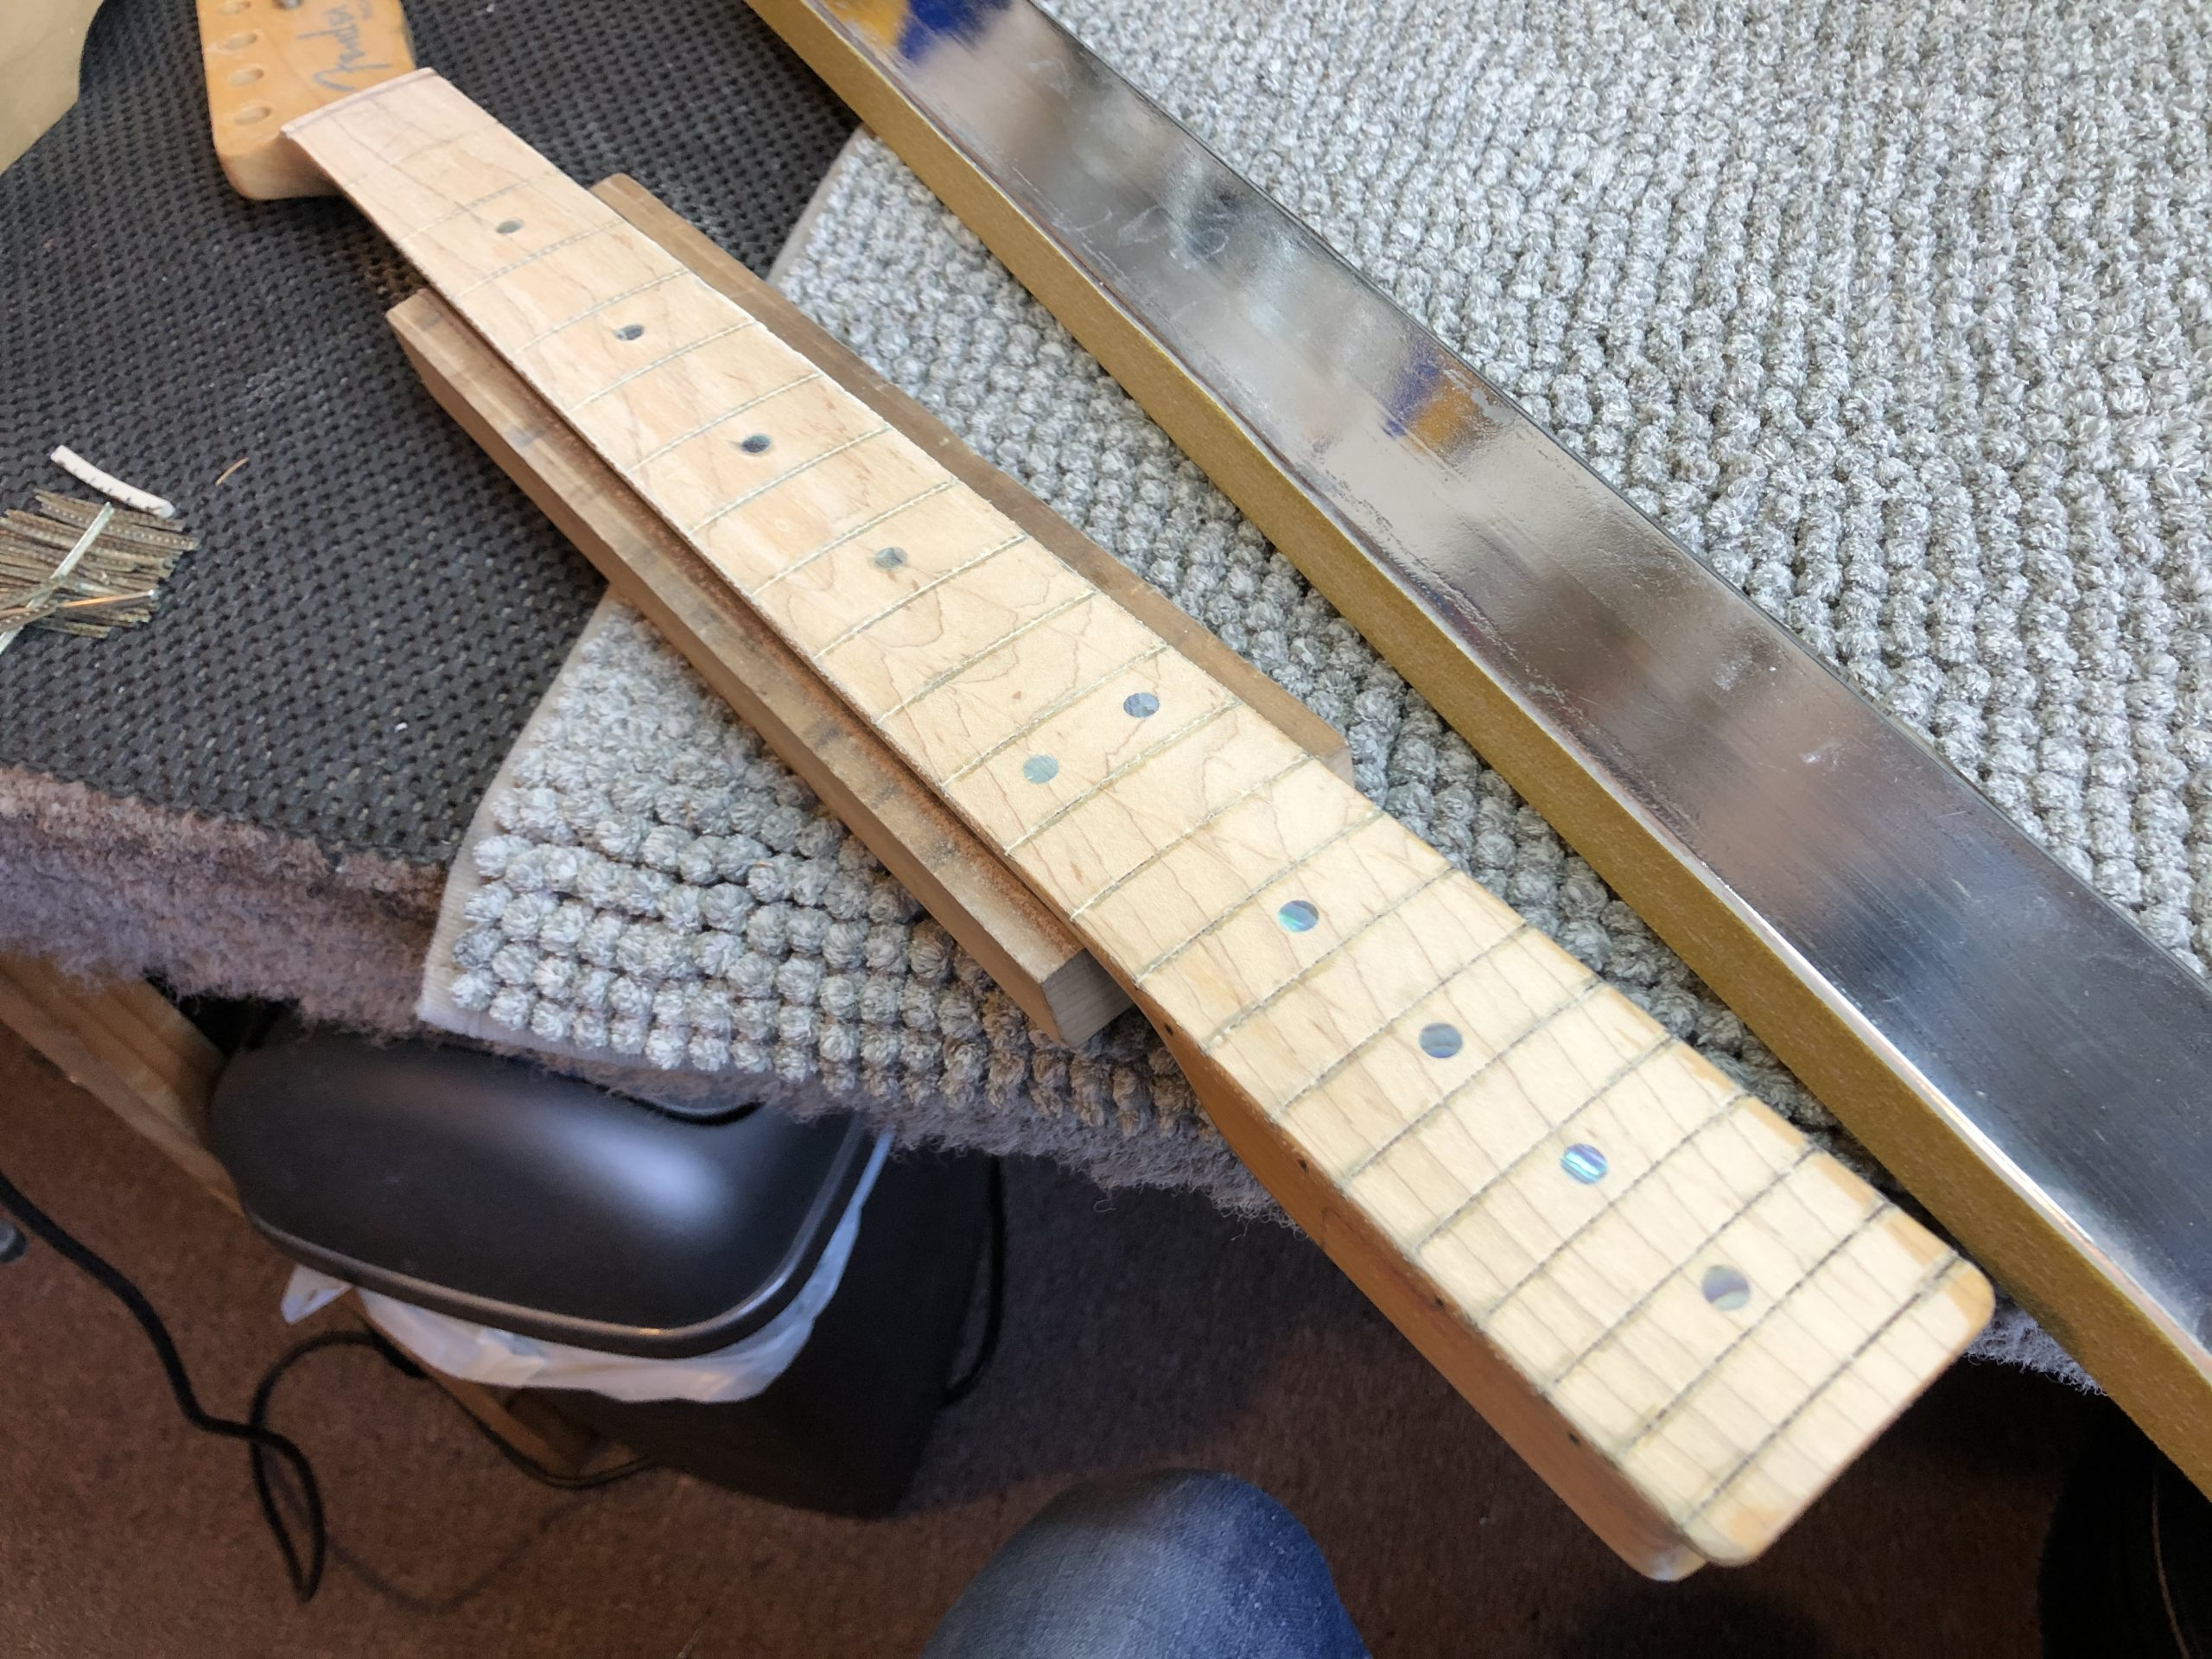 Levelling the fretboard